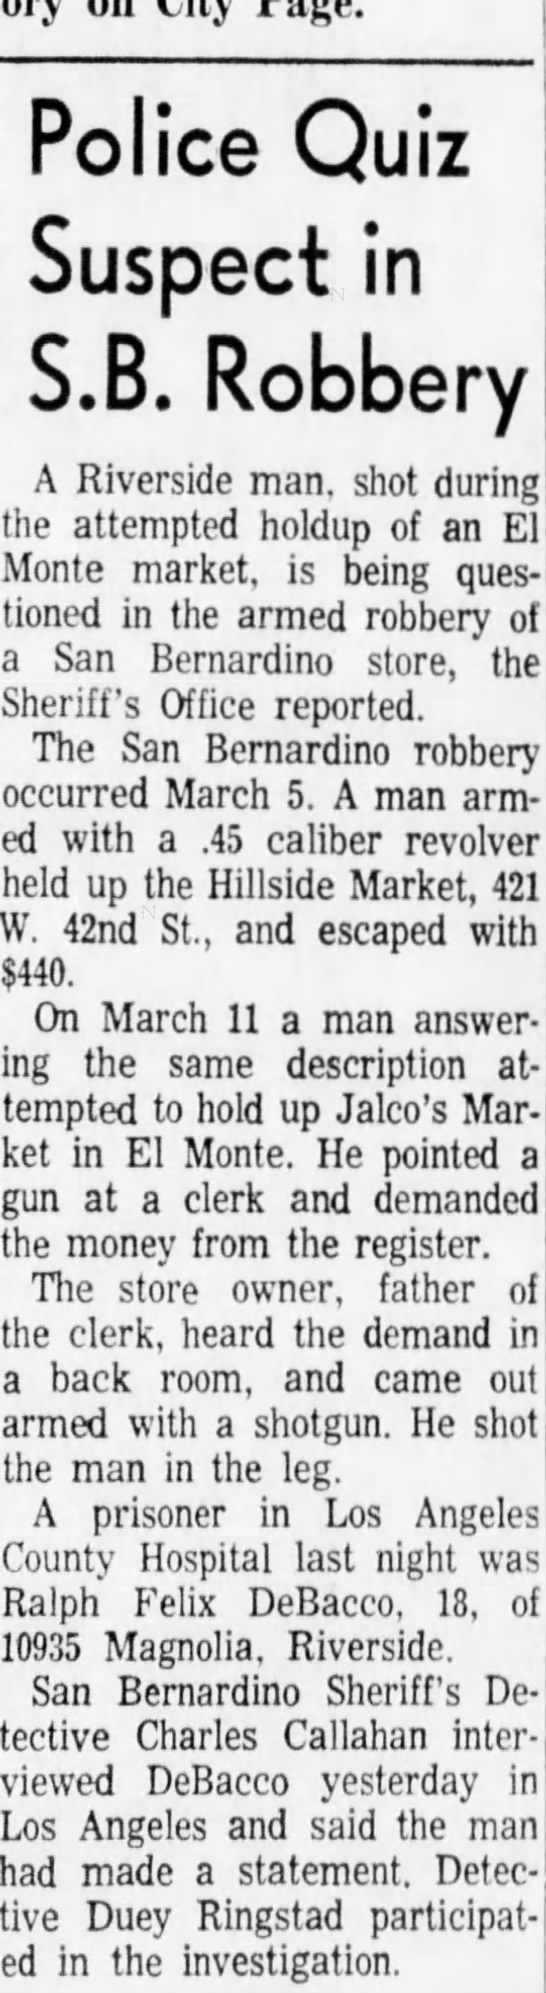 March 17, 1965